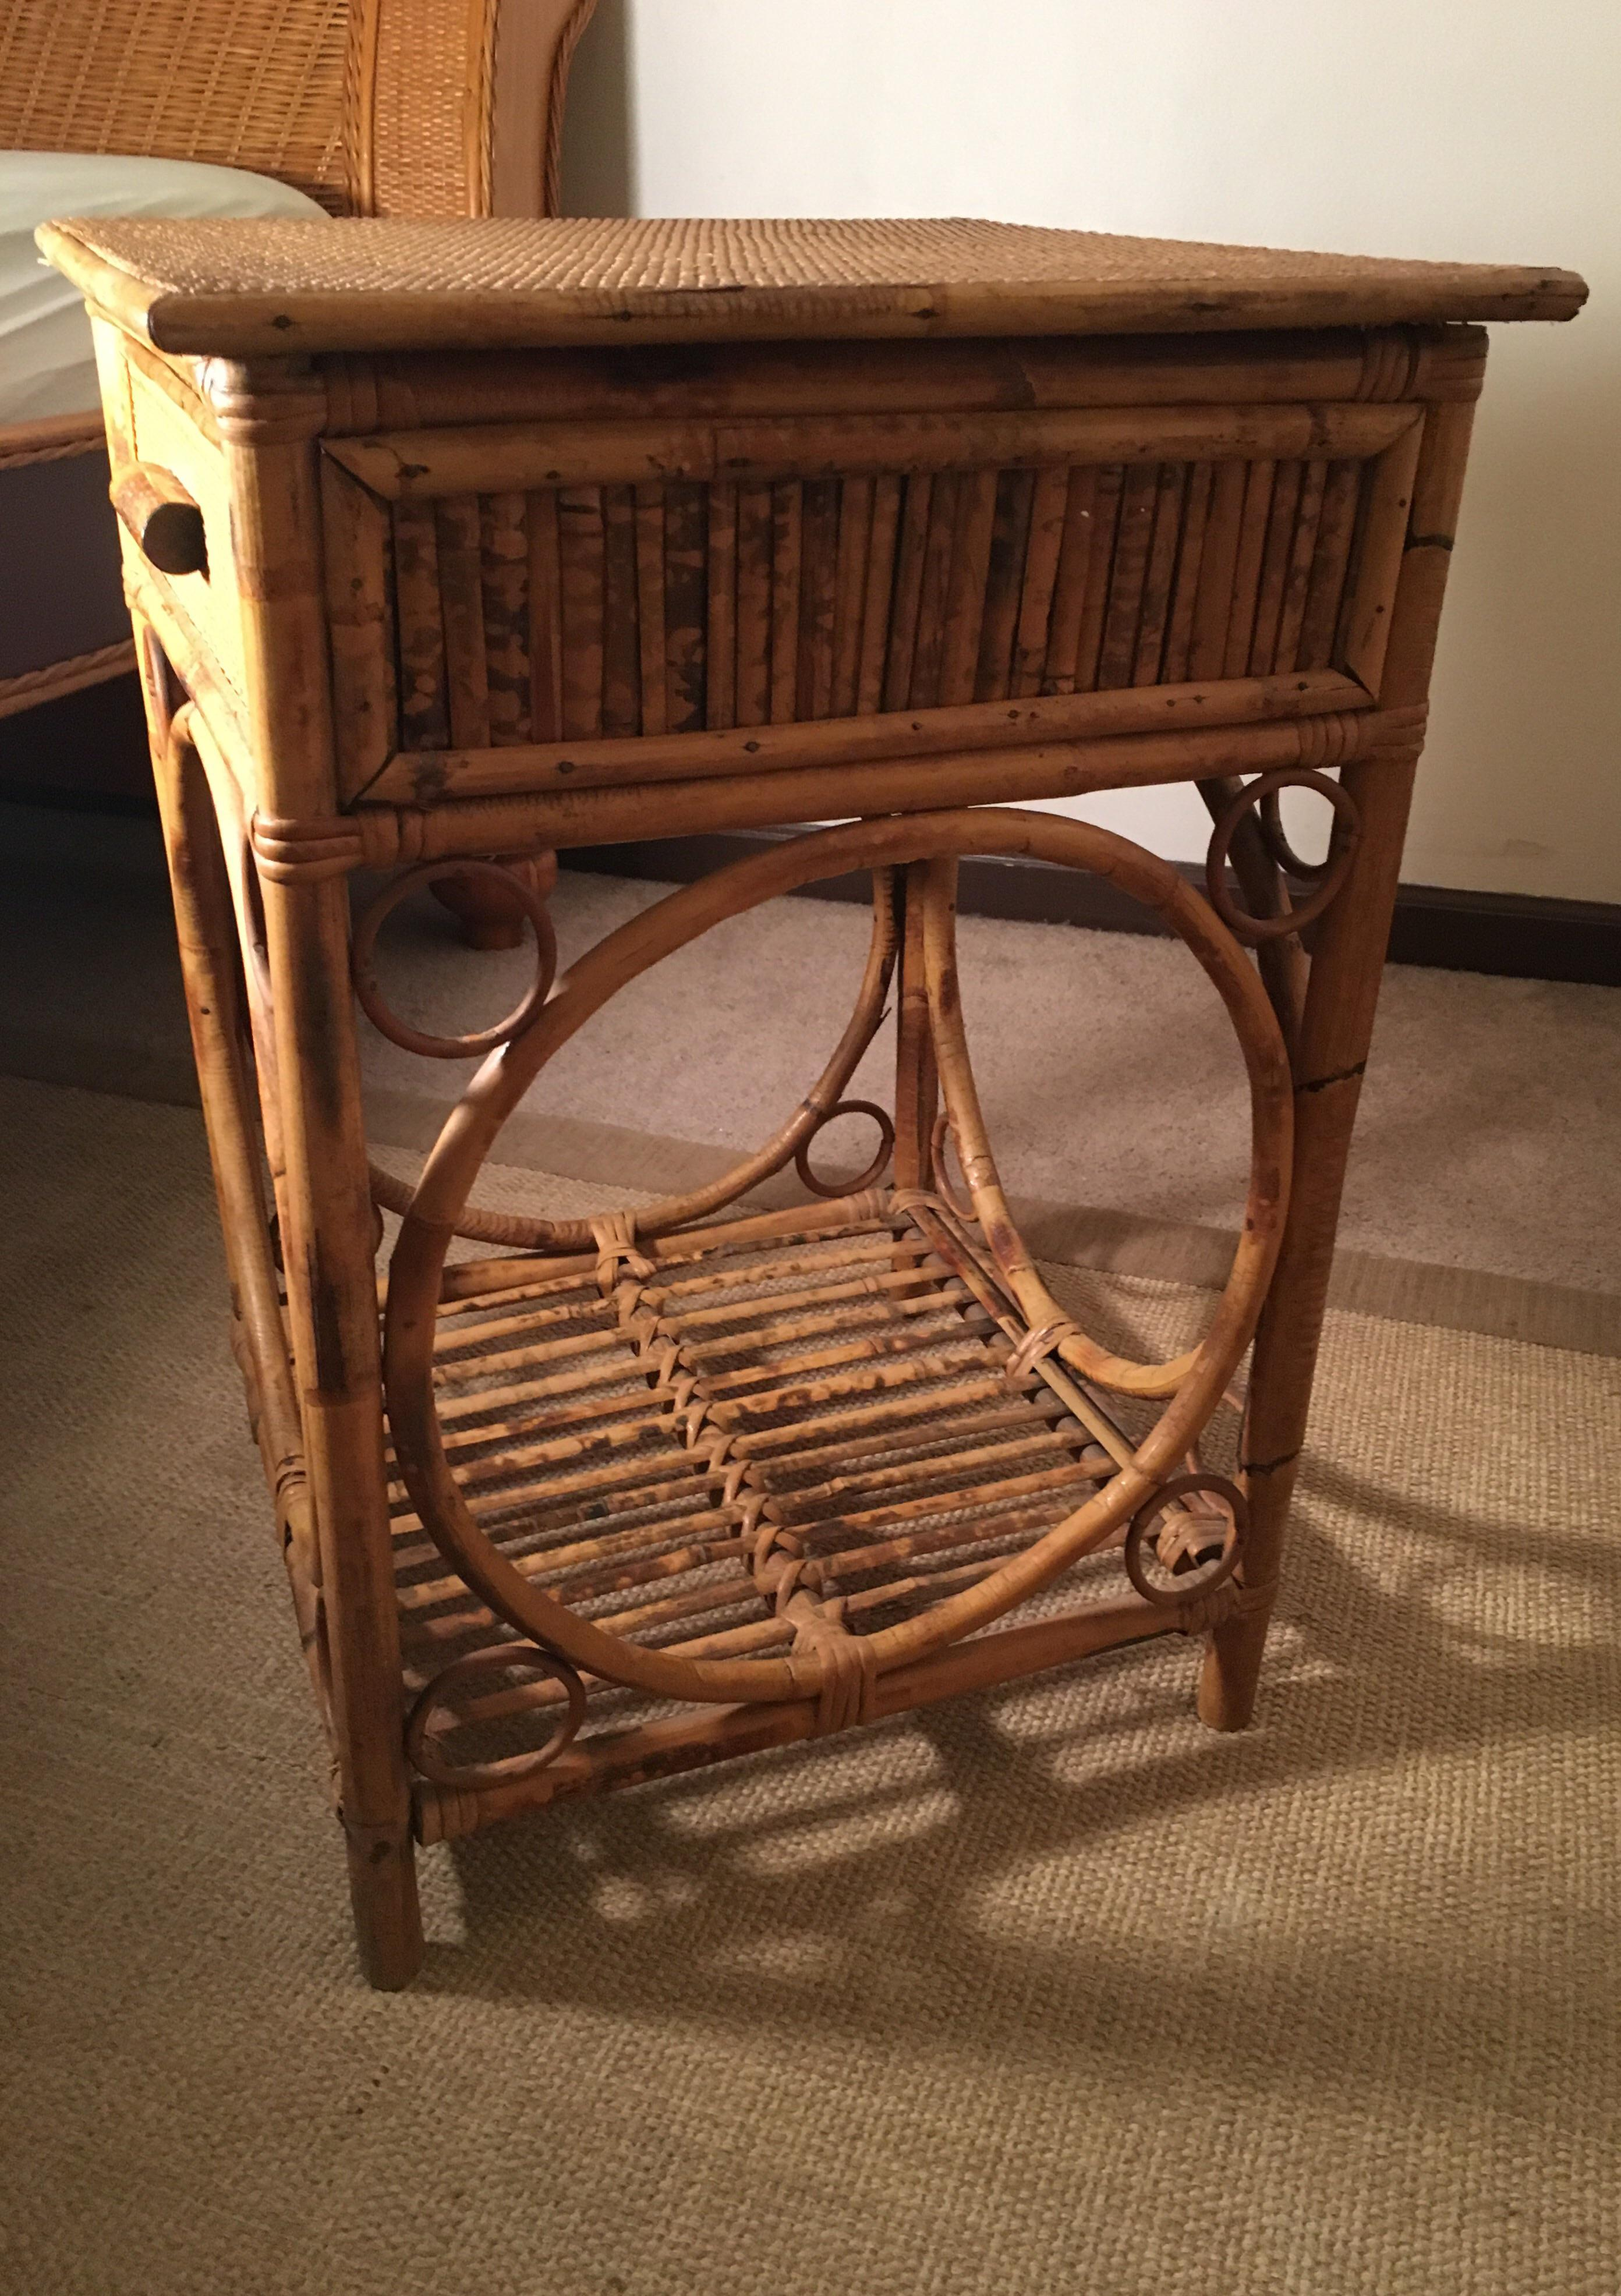 Etonnant Boho Chic Vintage Tortoise Rattan Nightstand With Drawer For Sale   Image 3  Of 4